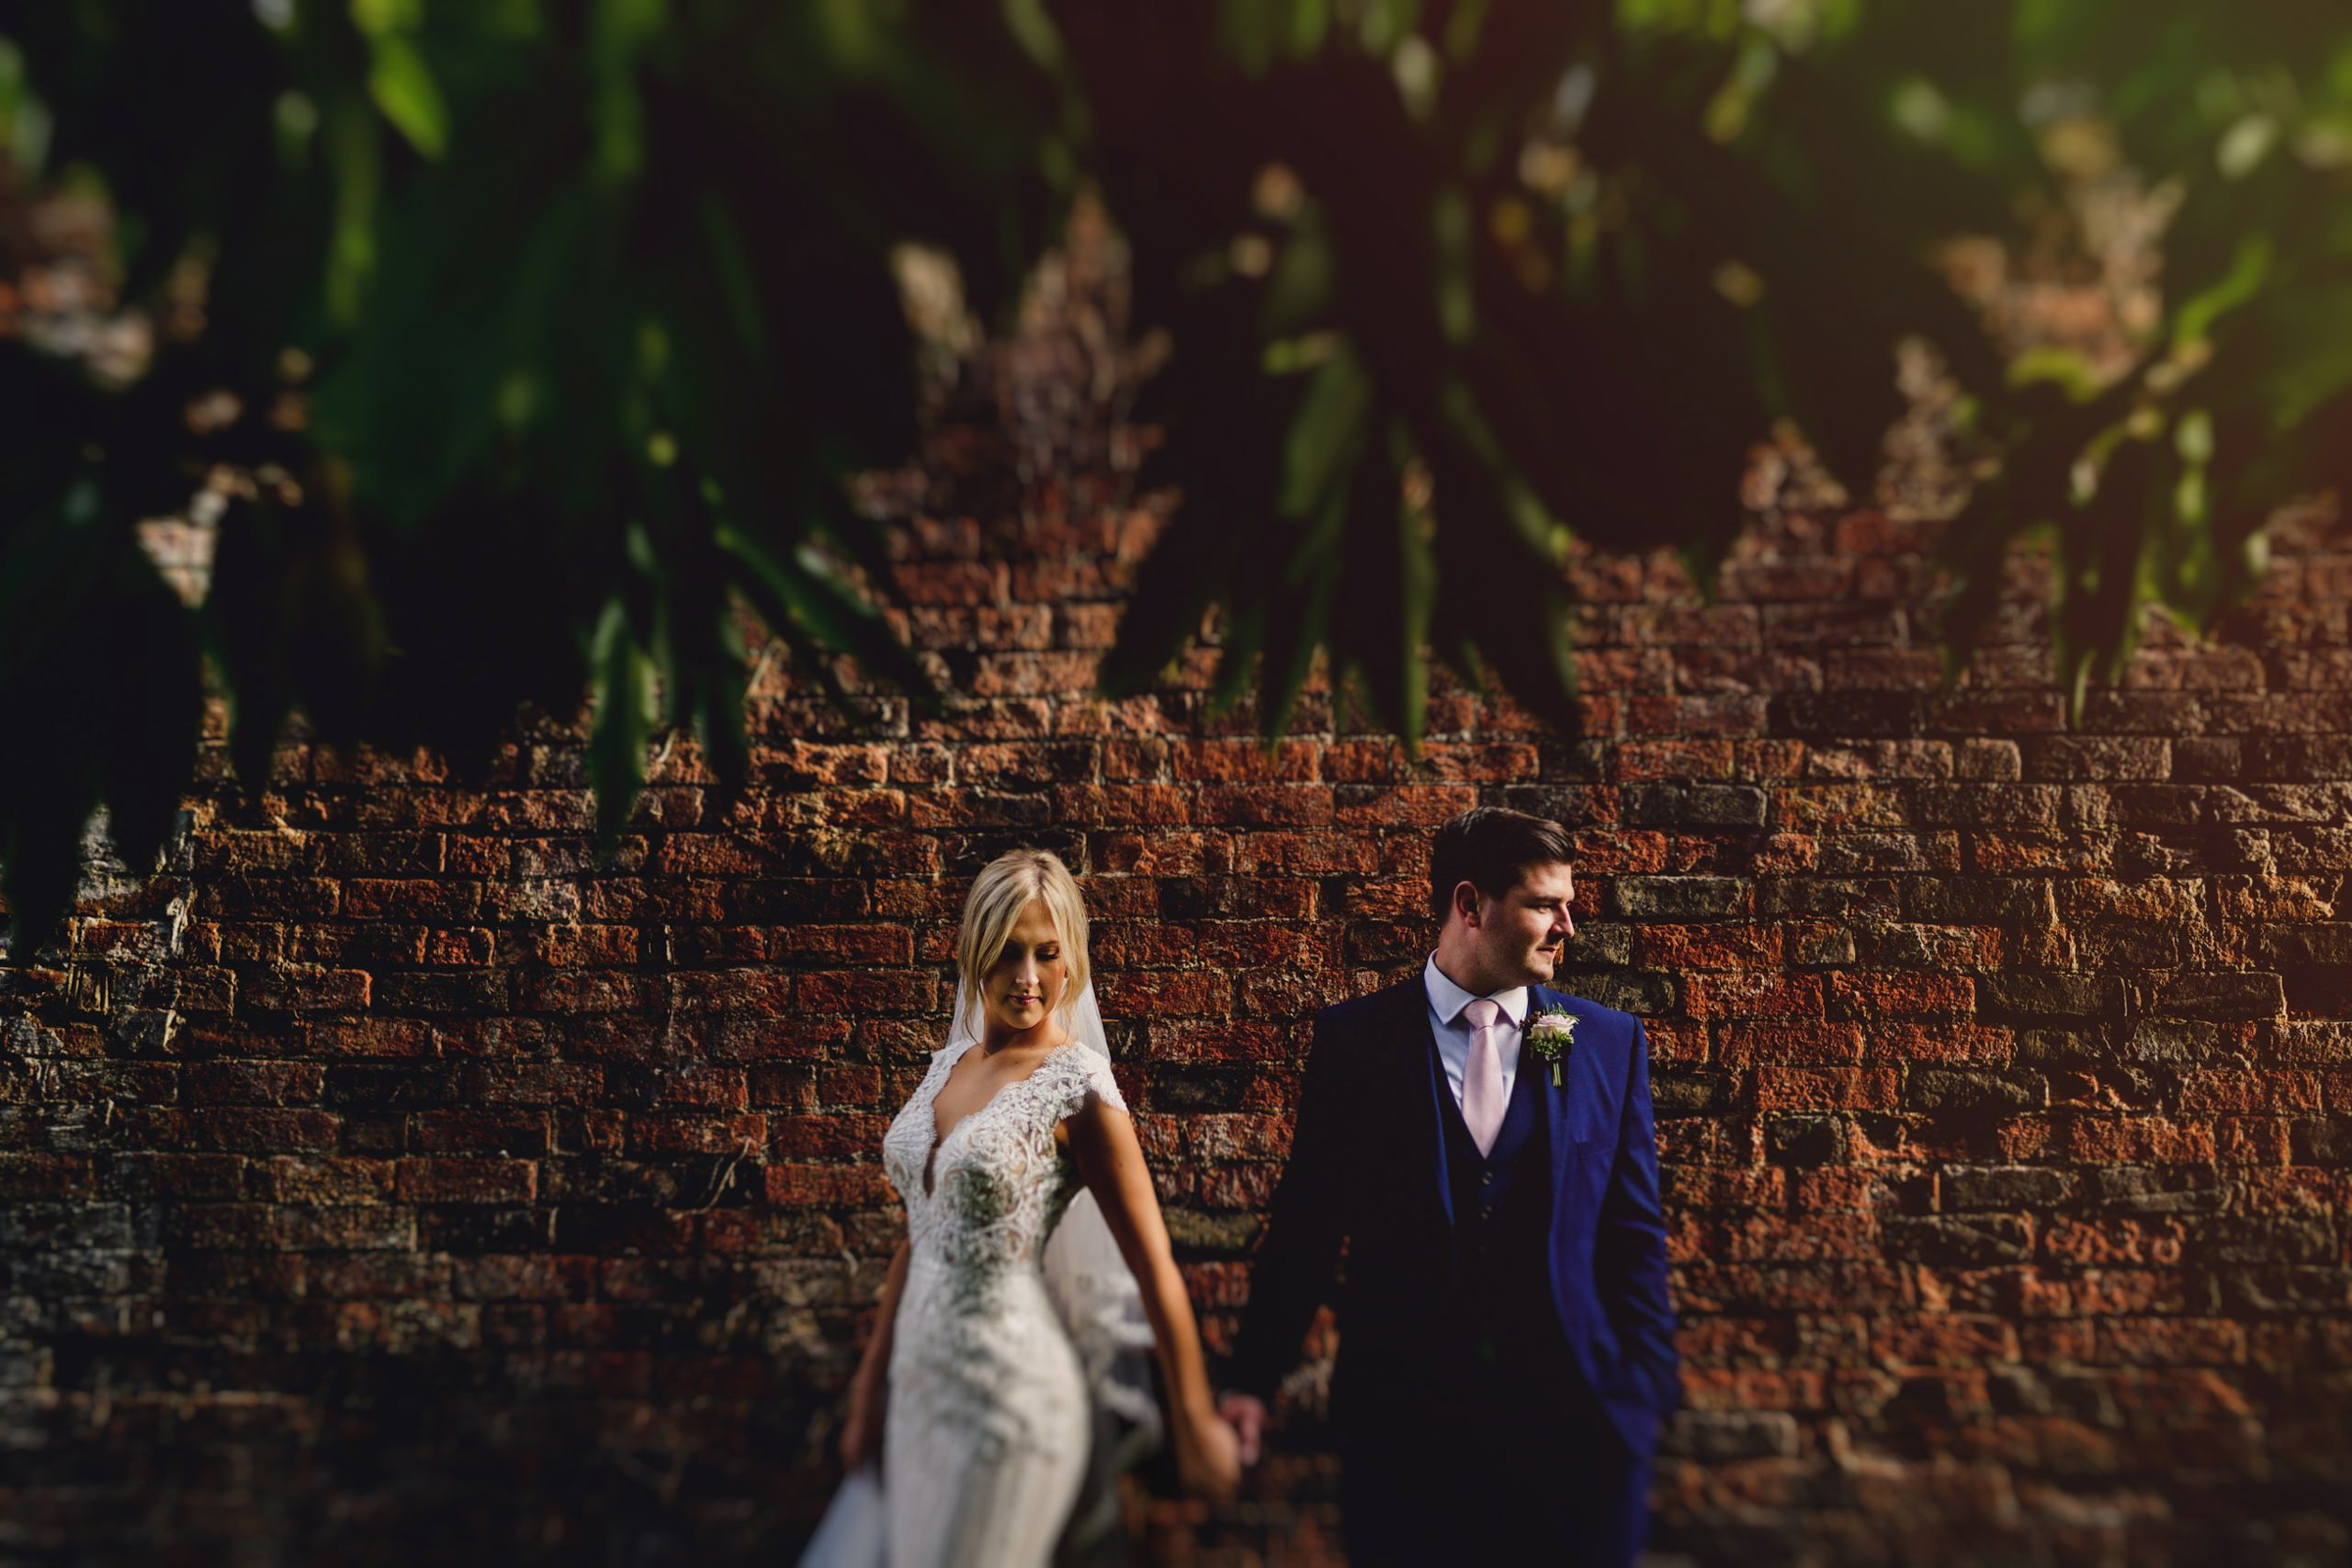 Couple portrait against brick wall and foliage - photo by MIKI Studios